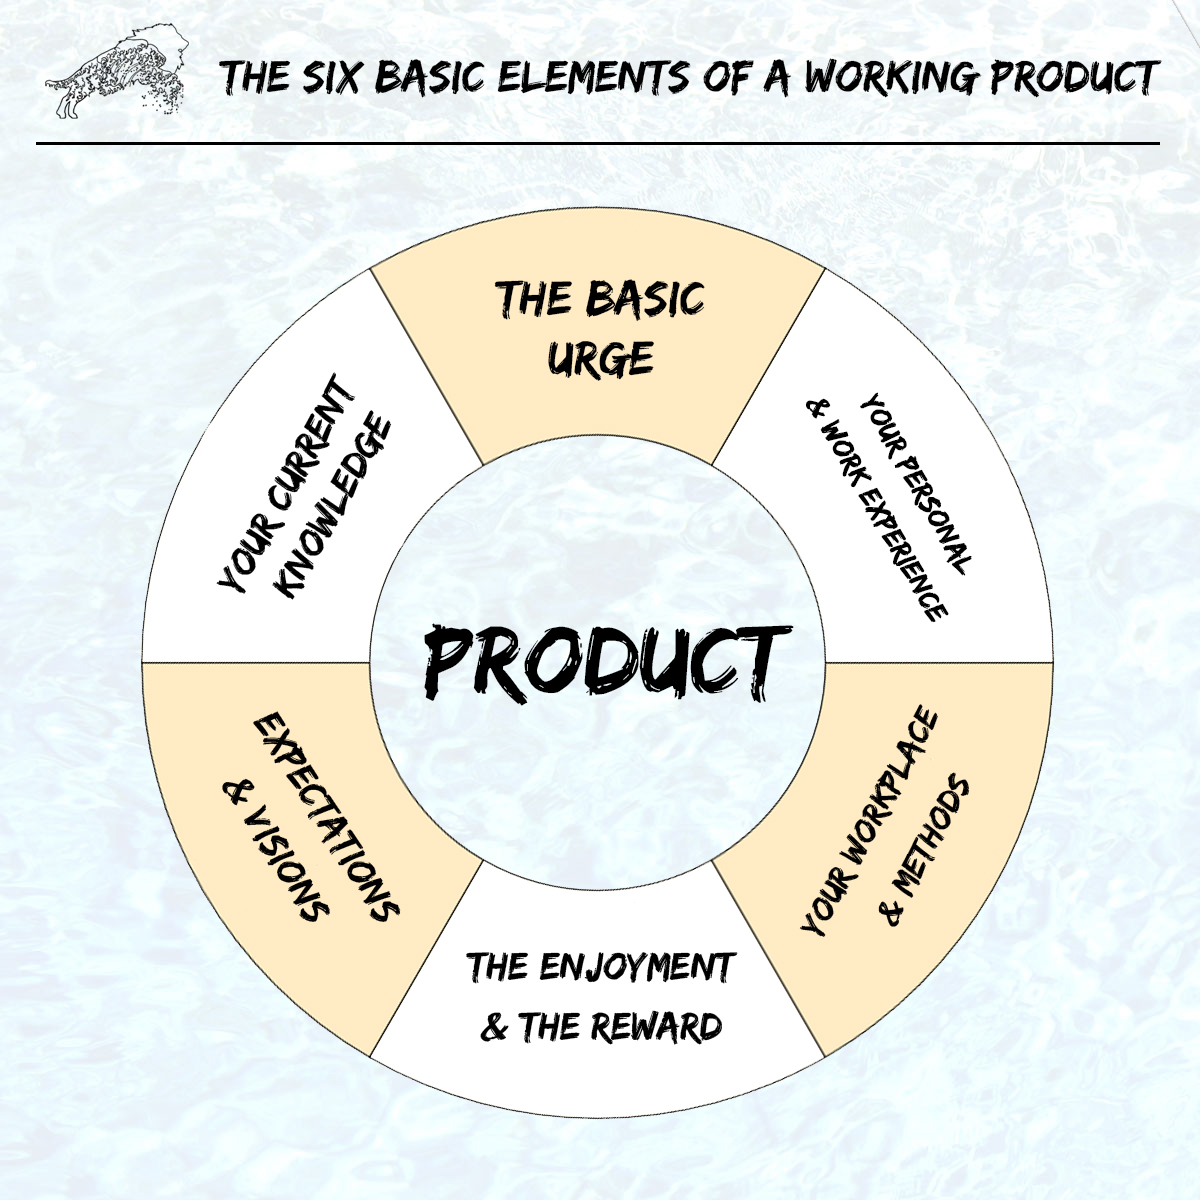 The six basic elements of a working product - Introduction